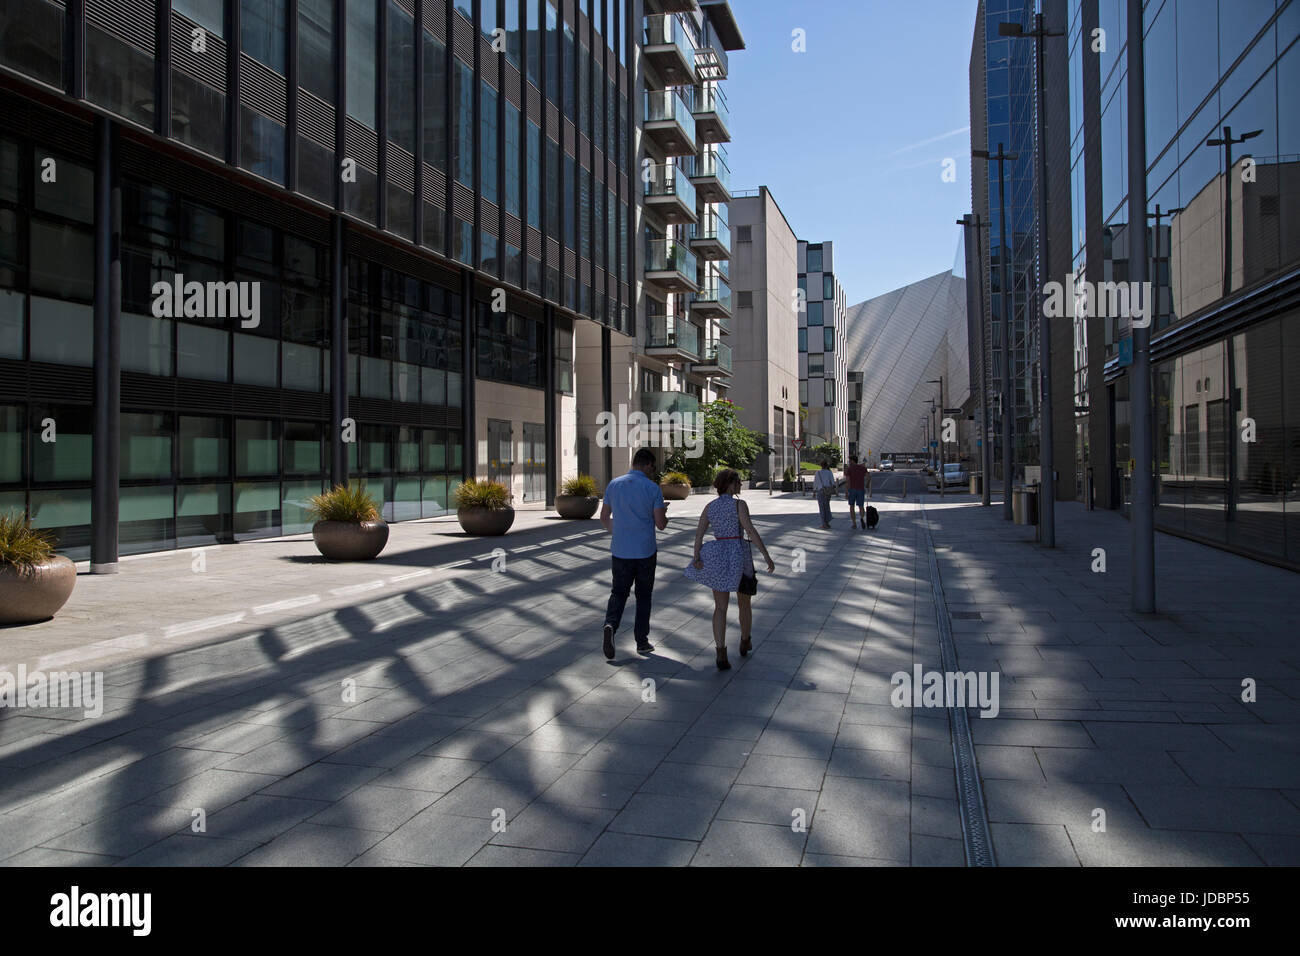 A couple walking in Dublin docklands. Ireland. - Stock Image